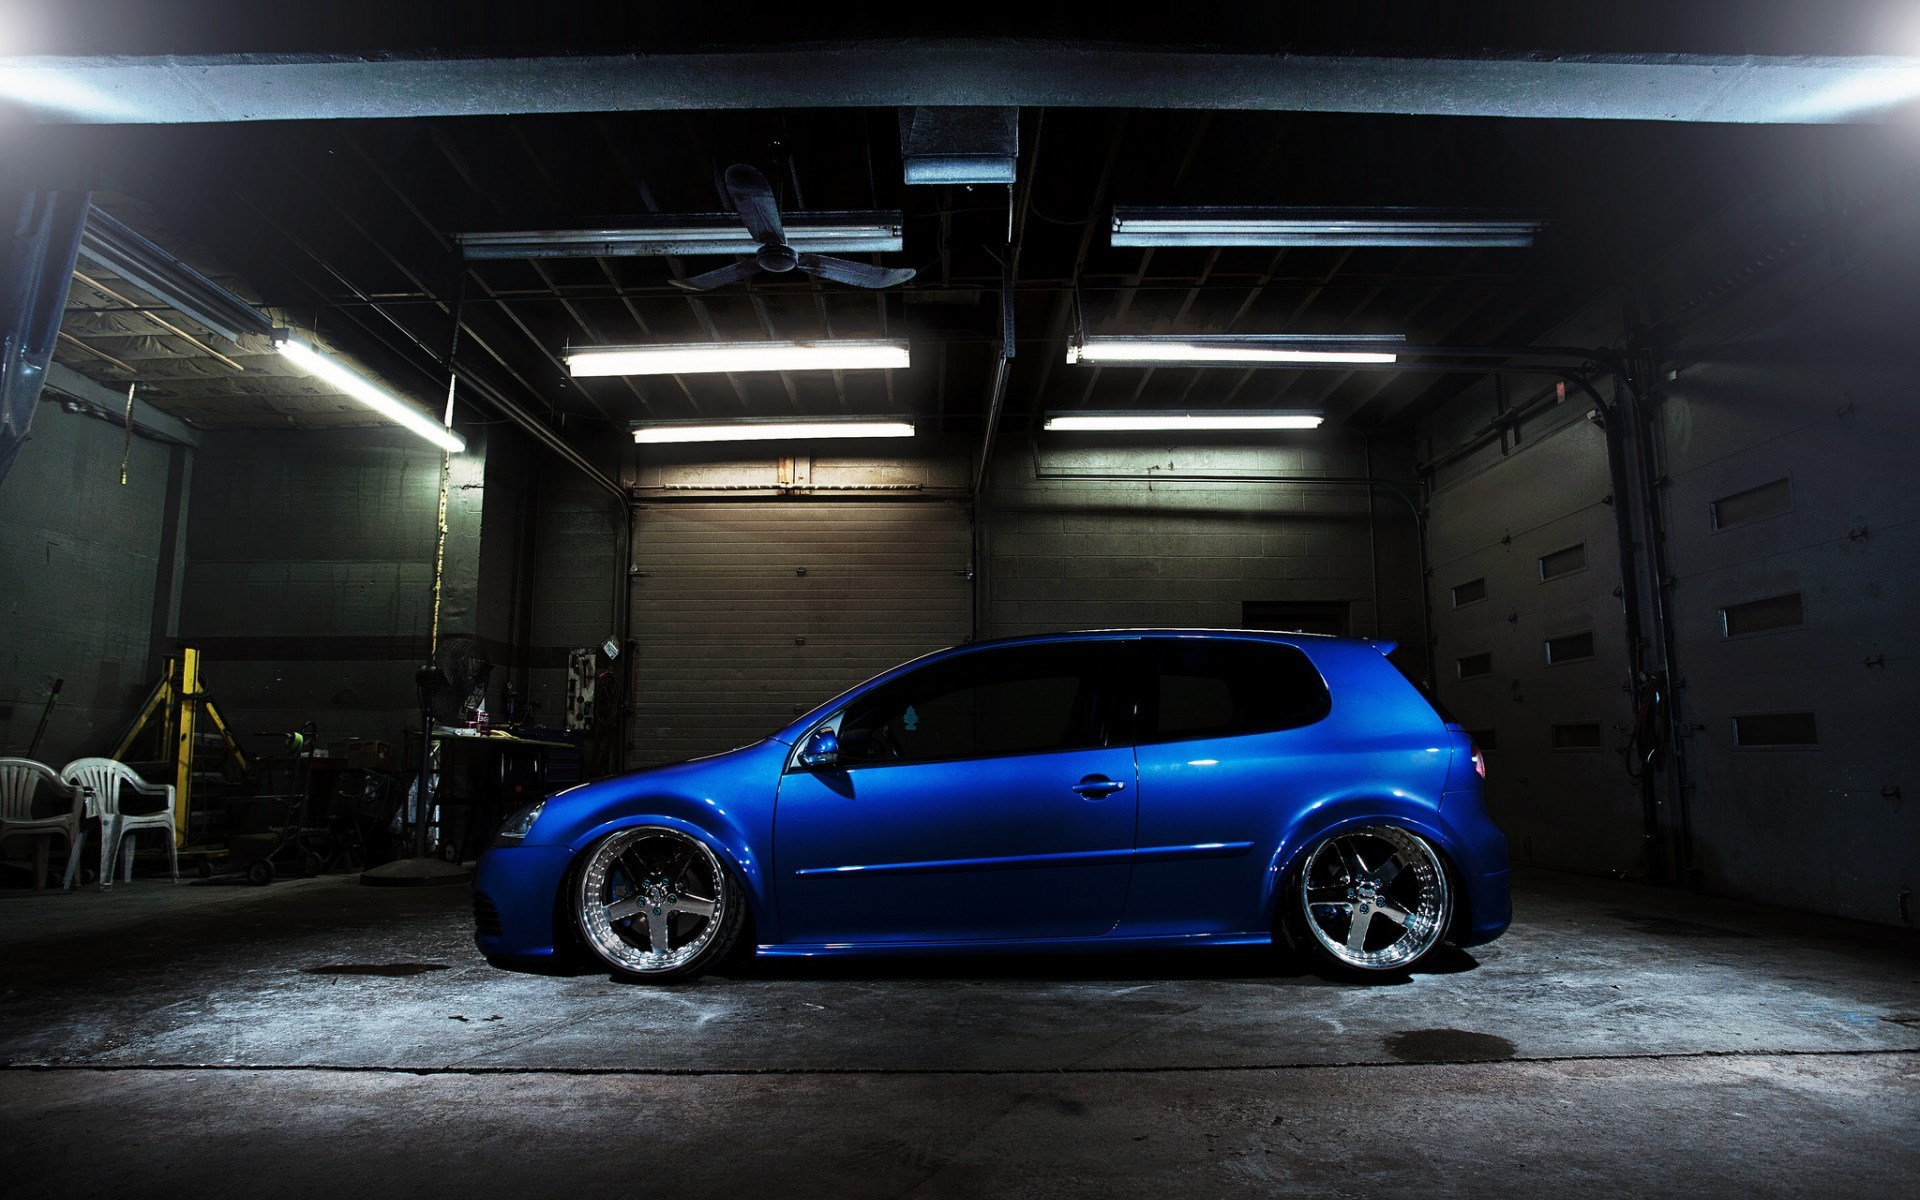 Golf_Gti_Wallpapers5